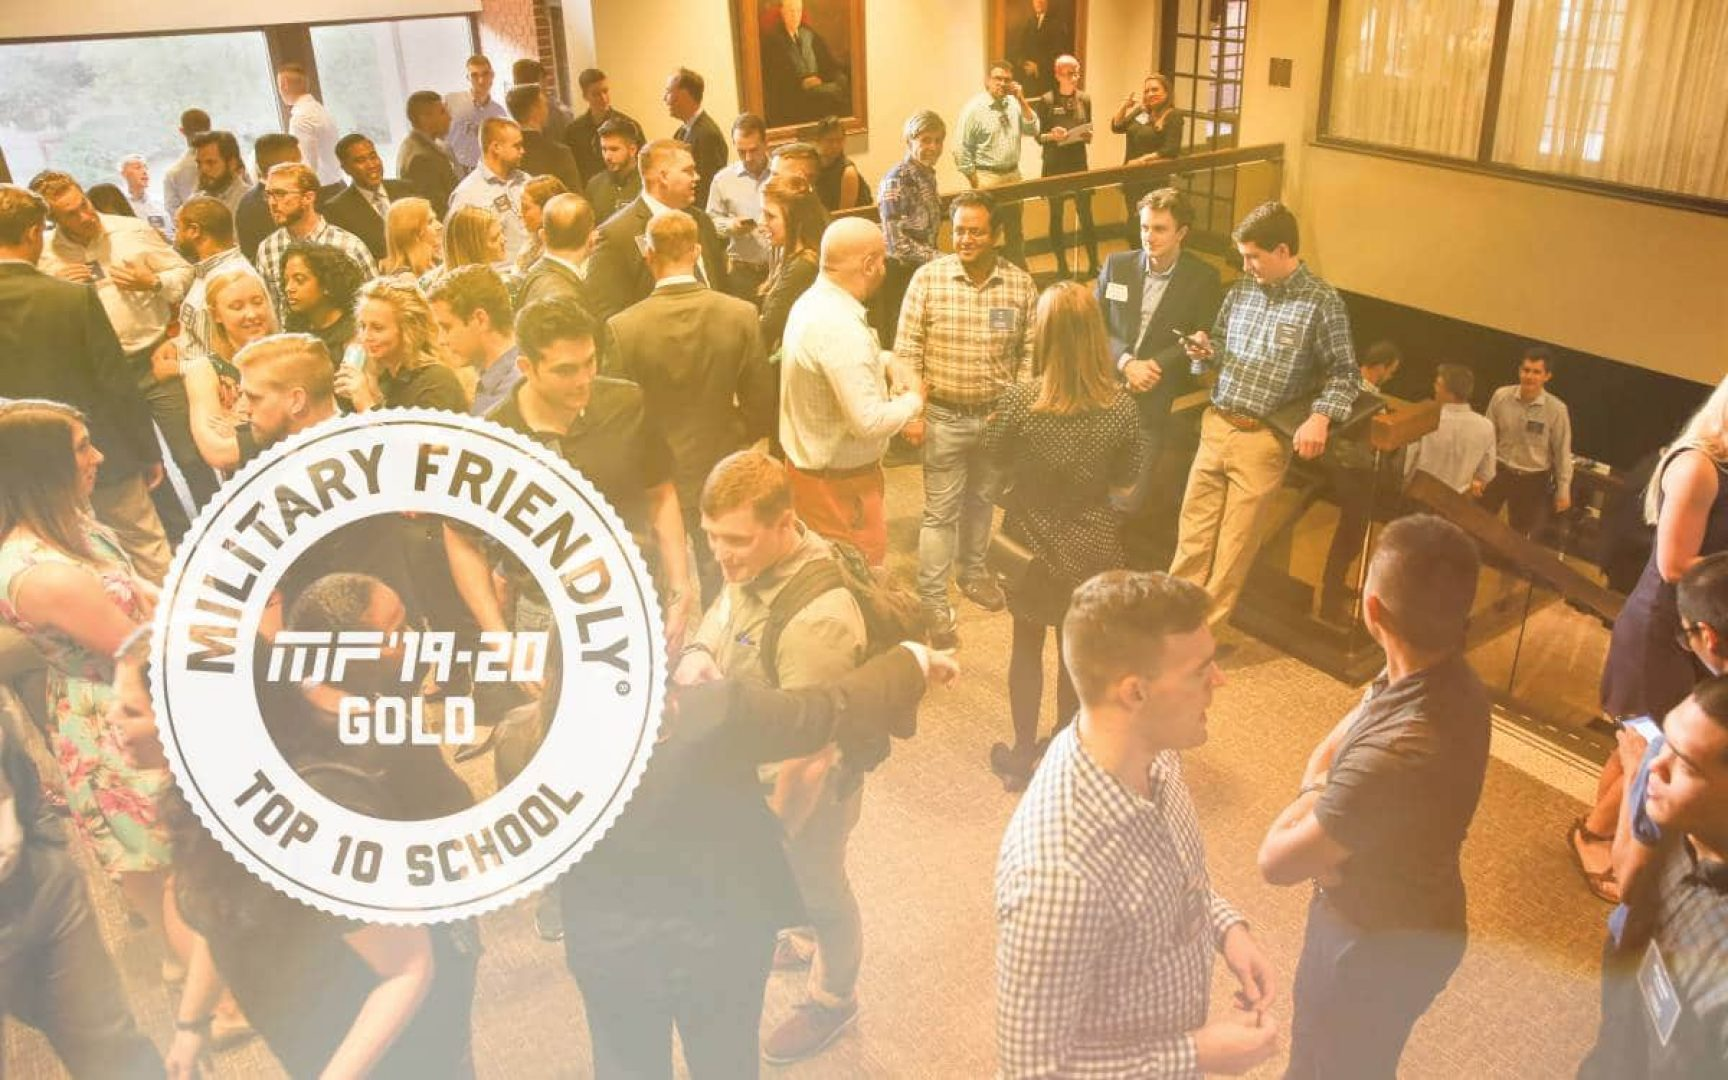 UF MBA students network prior to an event with former Chairman of the Joint Chiefs of Staff General Martin E. Dempsey, U.S. Army, Retired. The military friendly top 10 ranking logo is in the corner of the photo of the students.